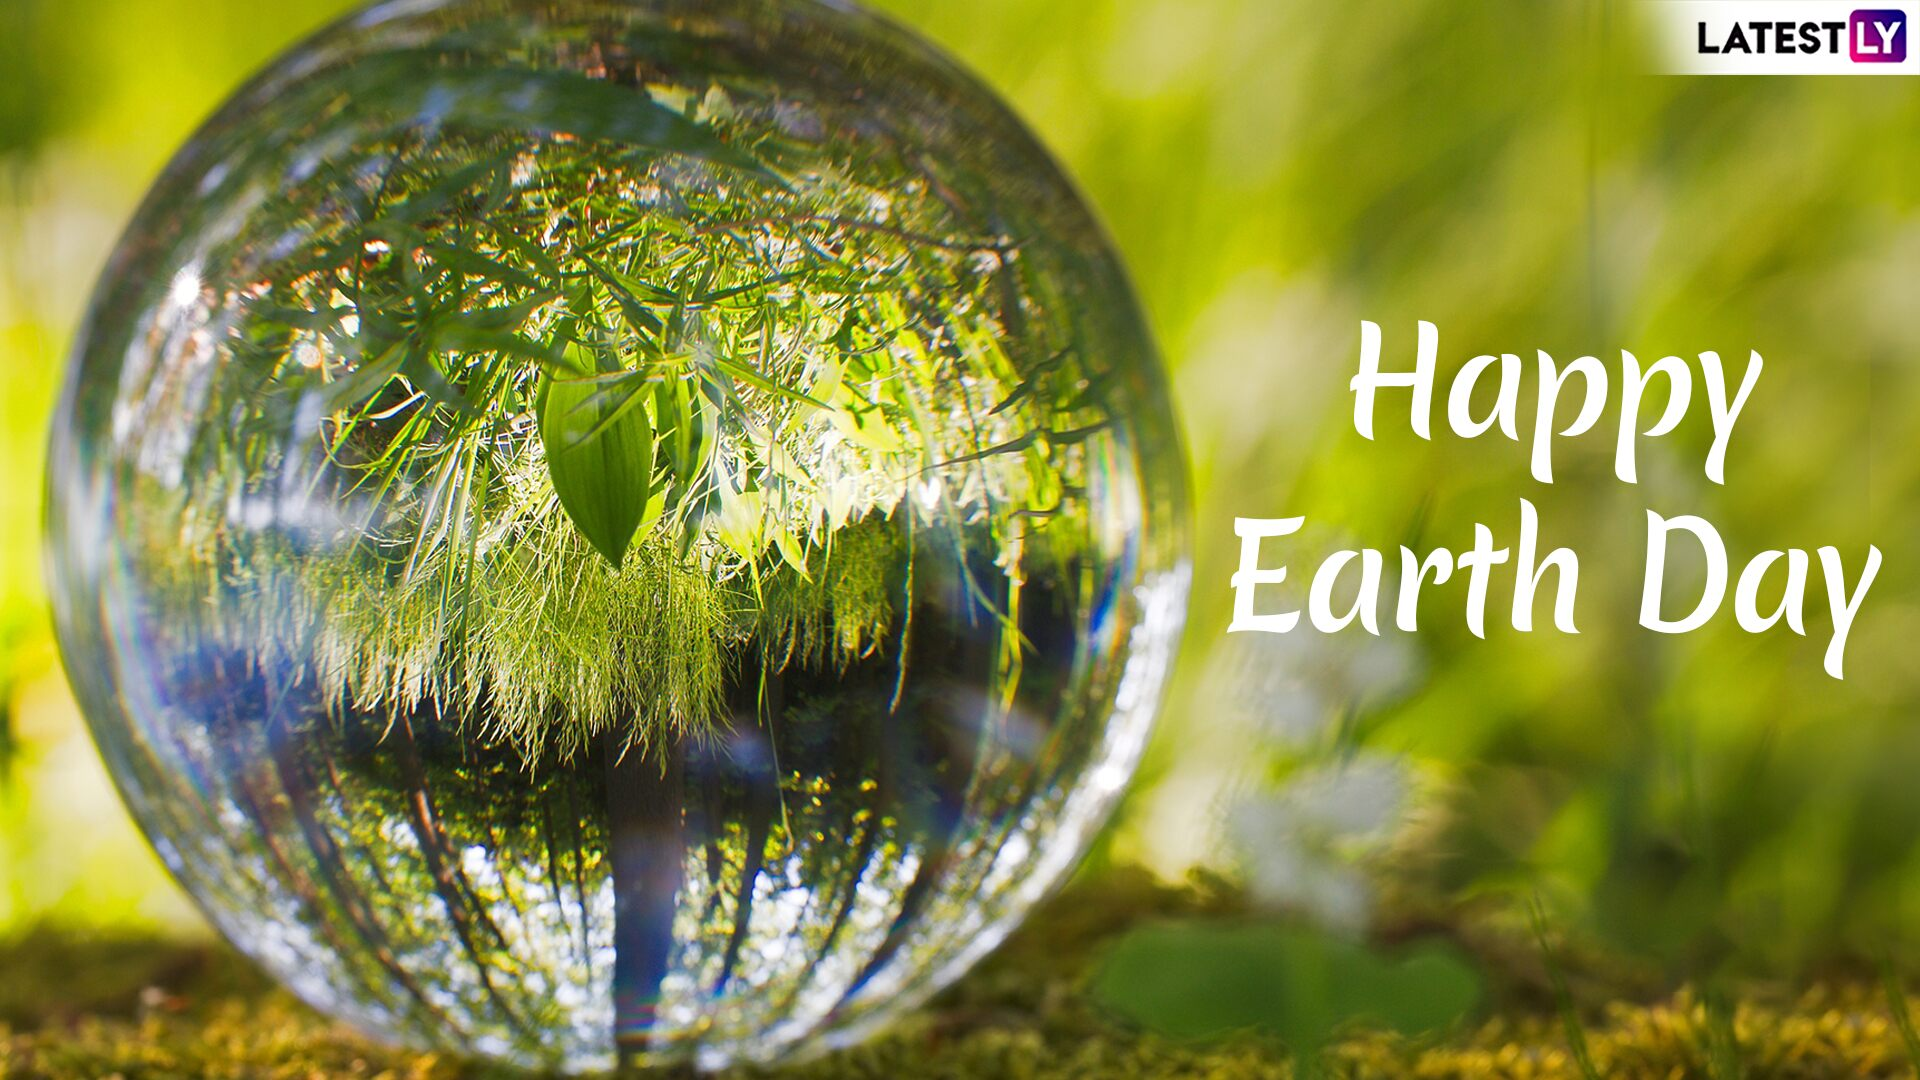 Earth Day 2019 Images HD Wallpapers for Download Online 1920x1080